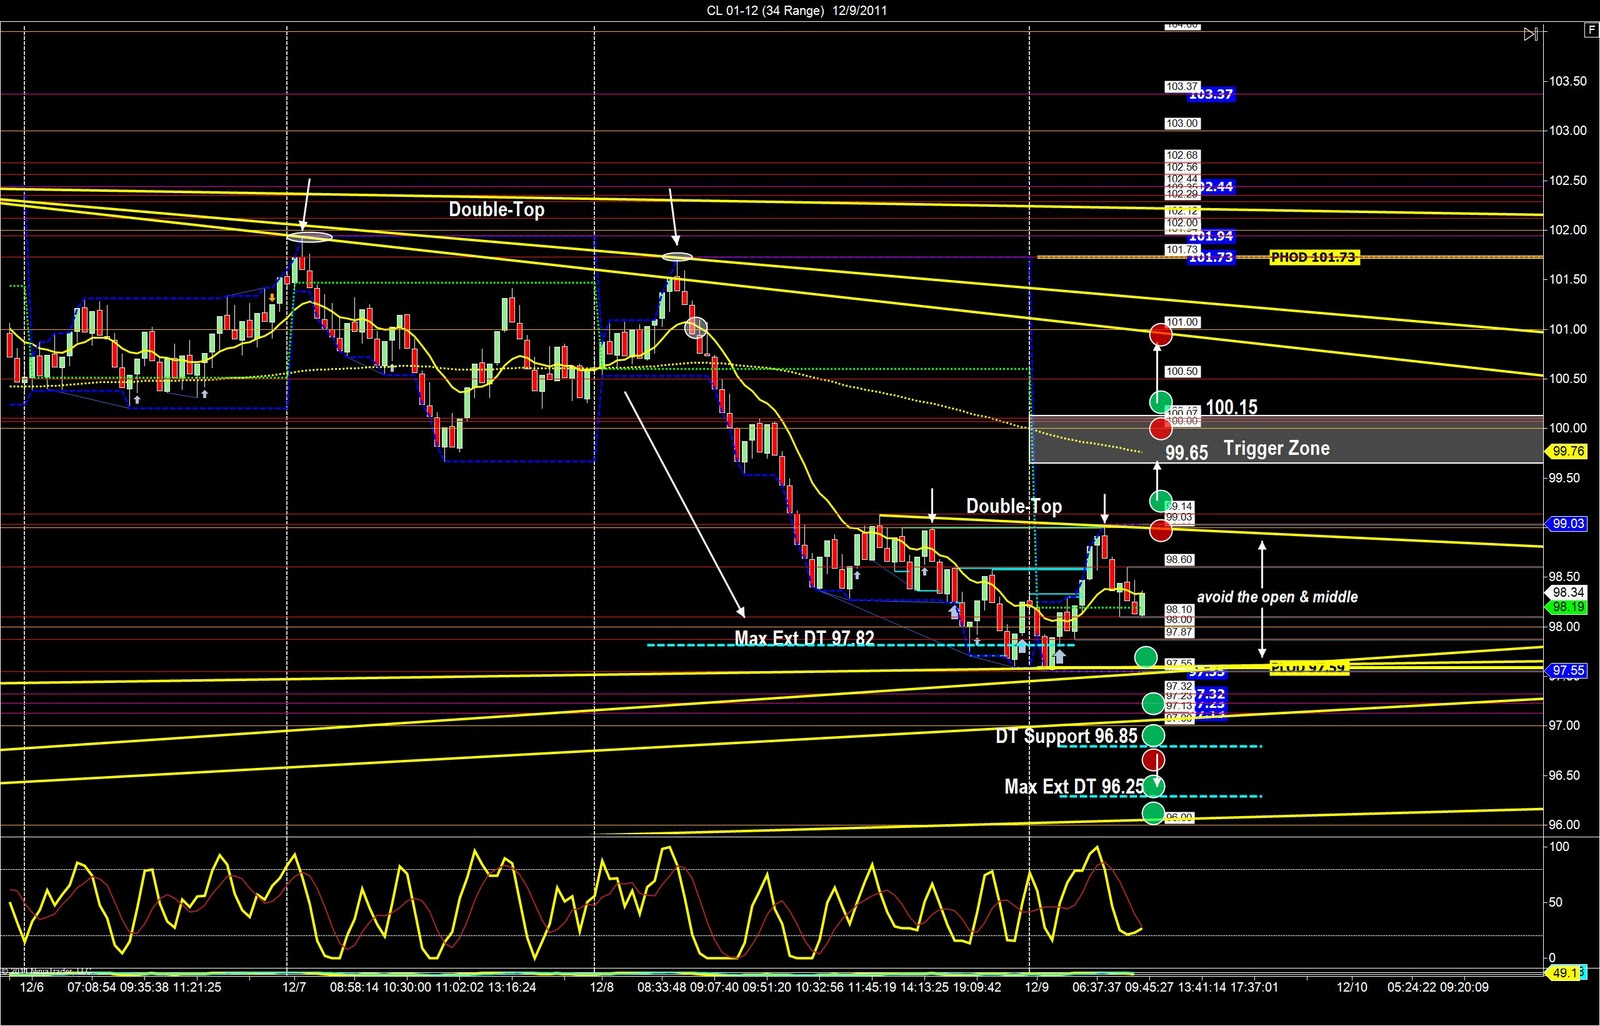 Cl trading strategies